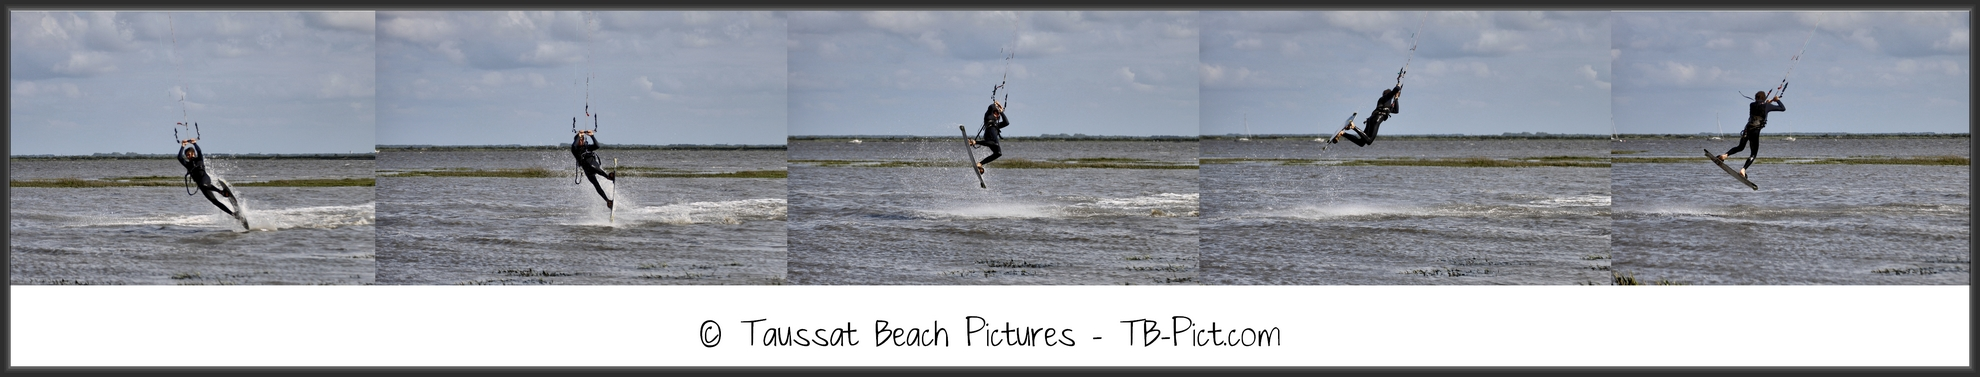 kitesurf back roll back loop rafale séquence saut jump transition